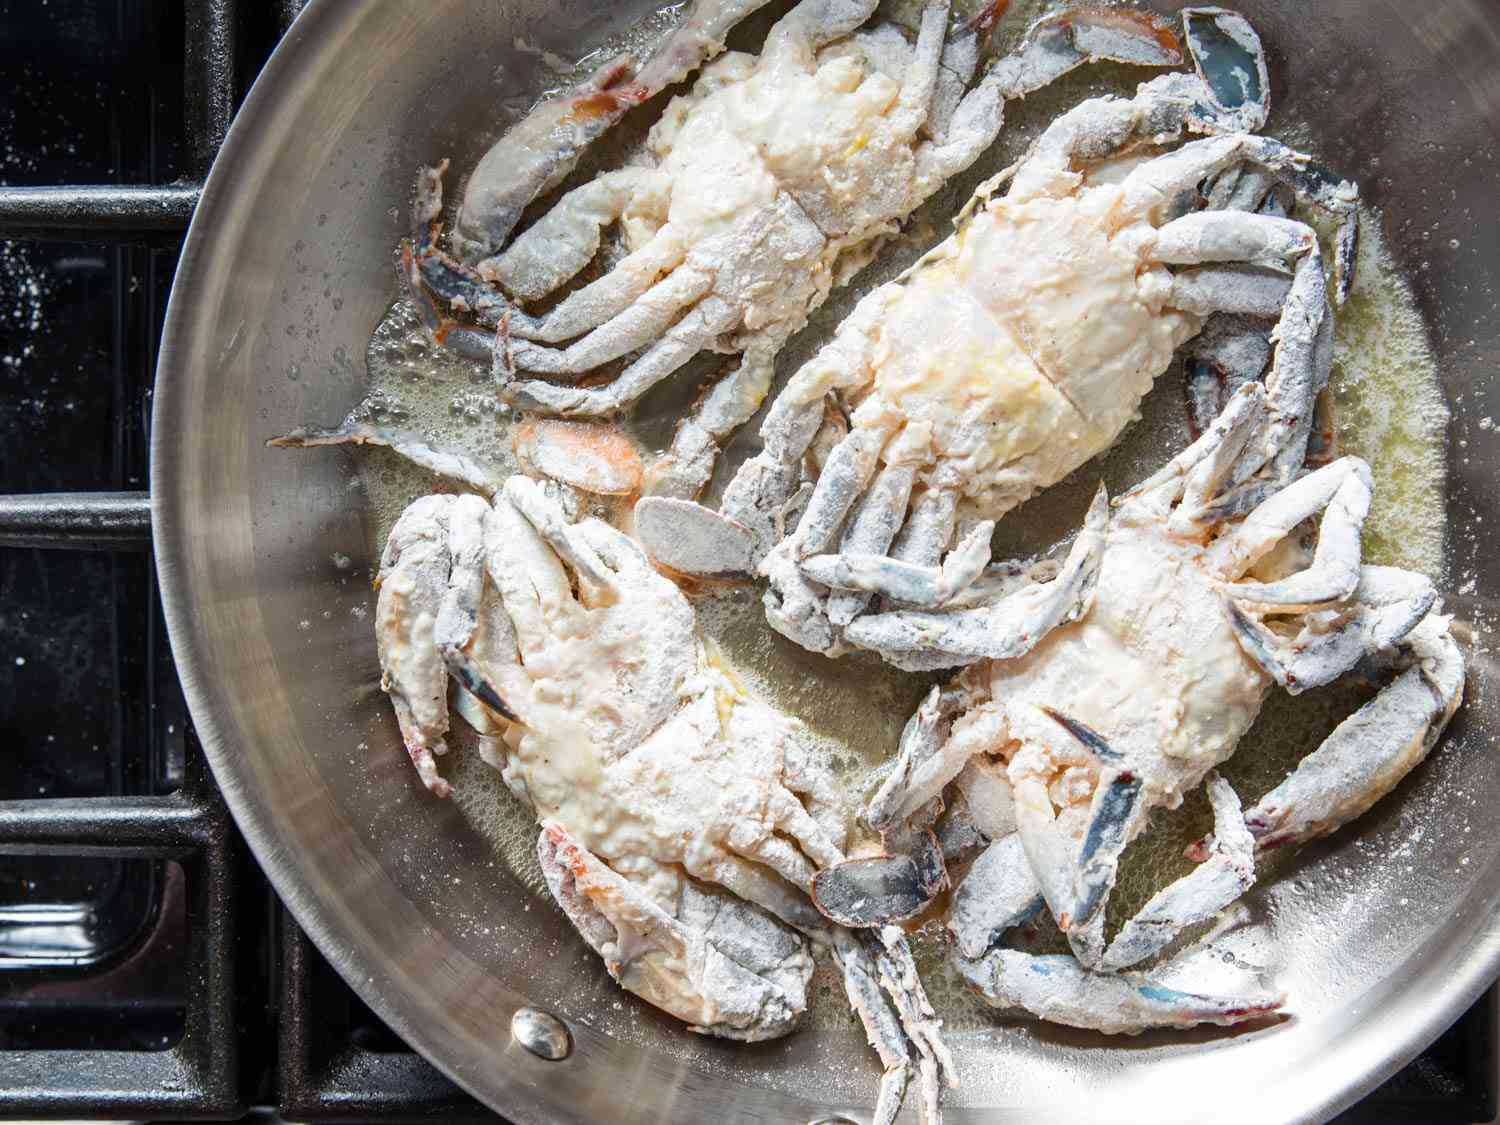 20190426-soft-shell-crab-butter-capers-vicky-wasik-3